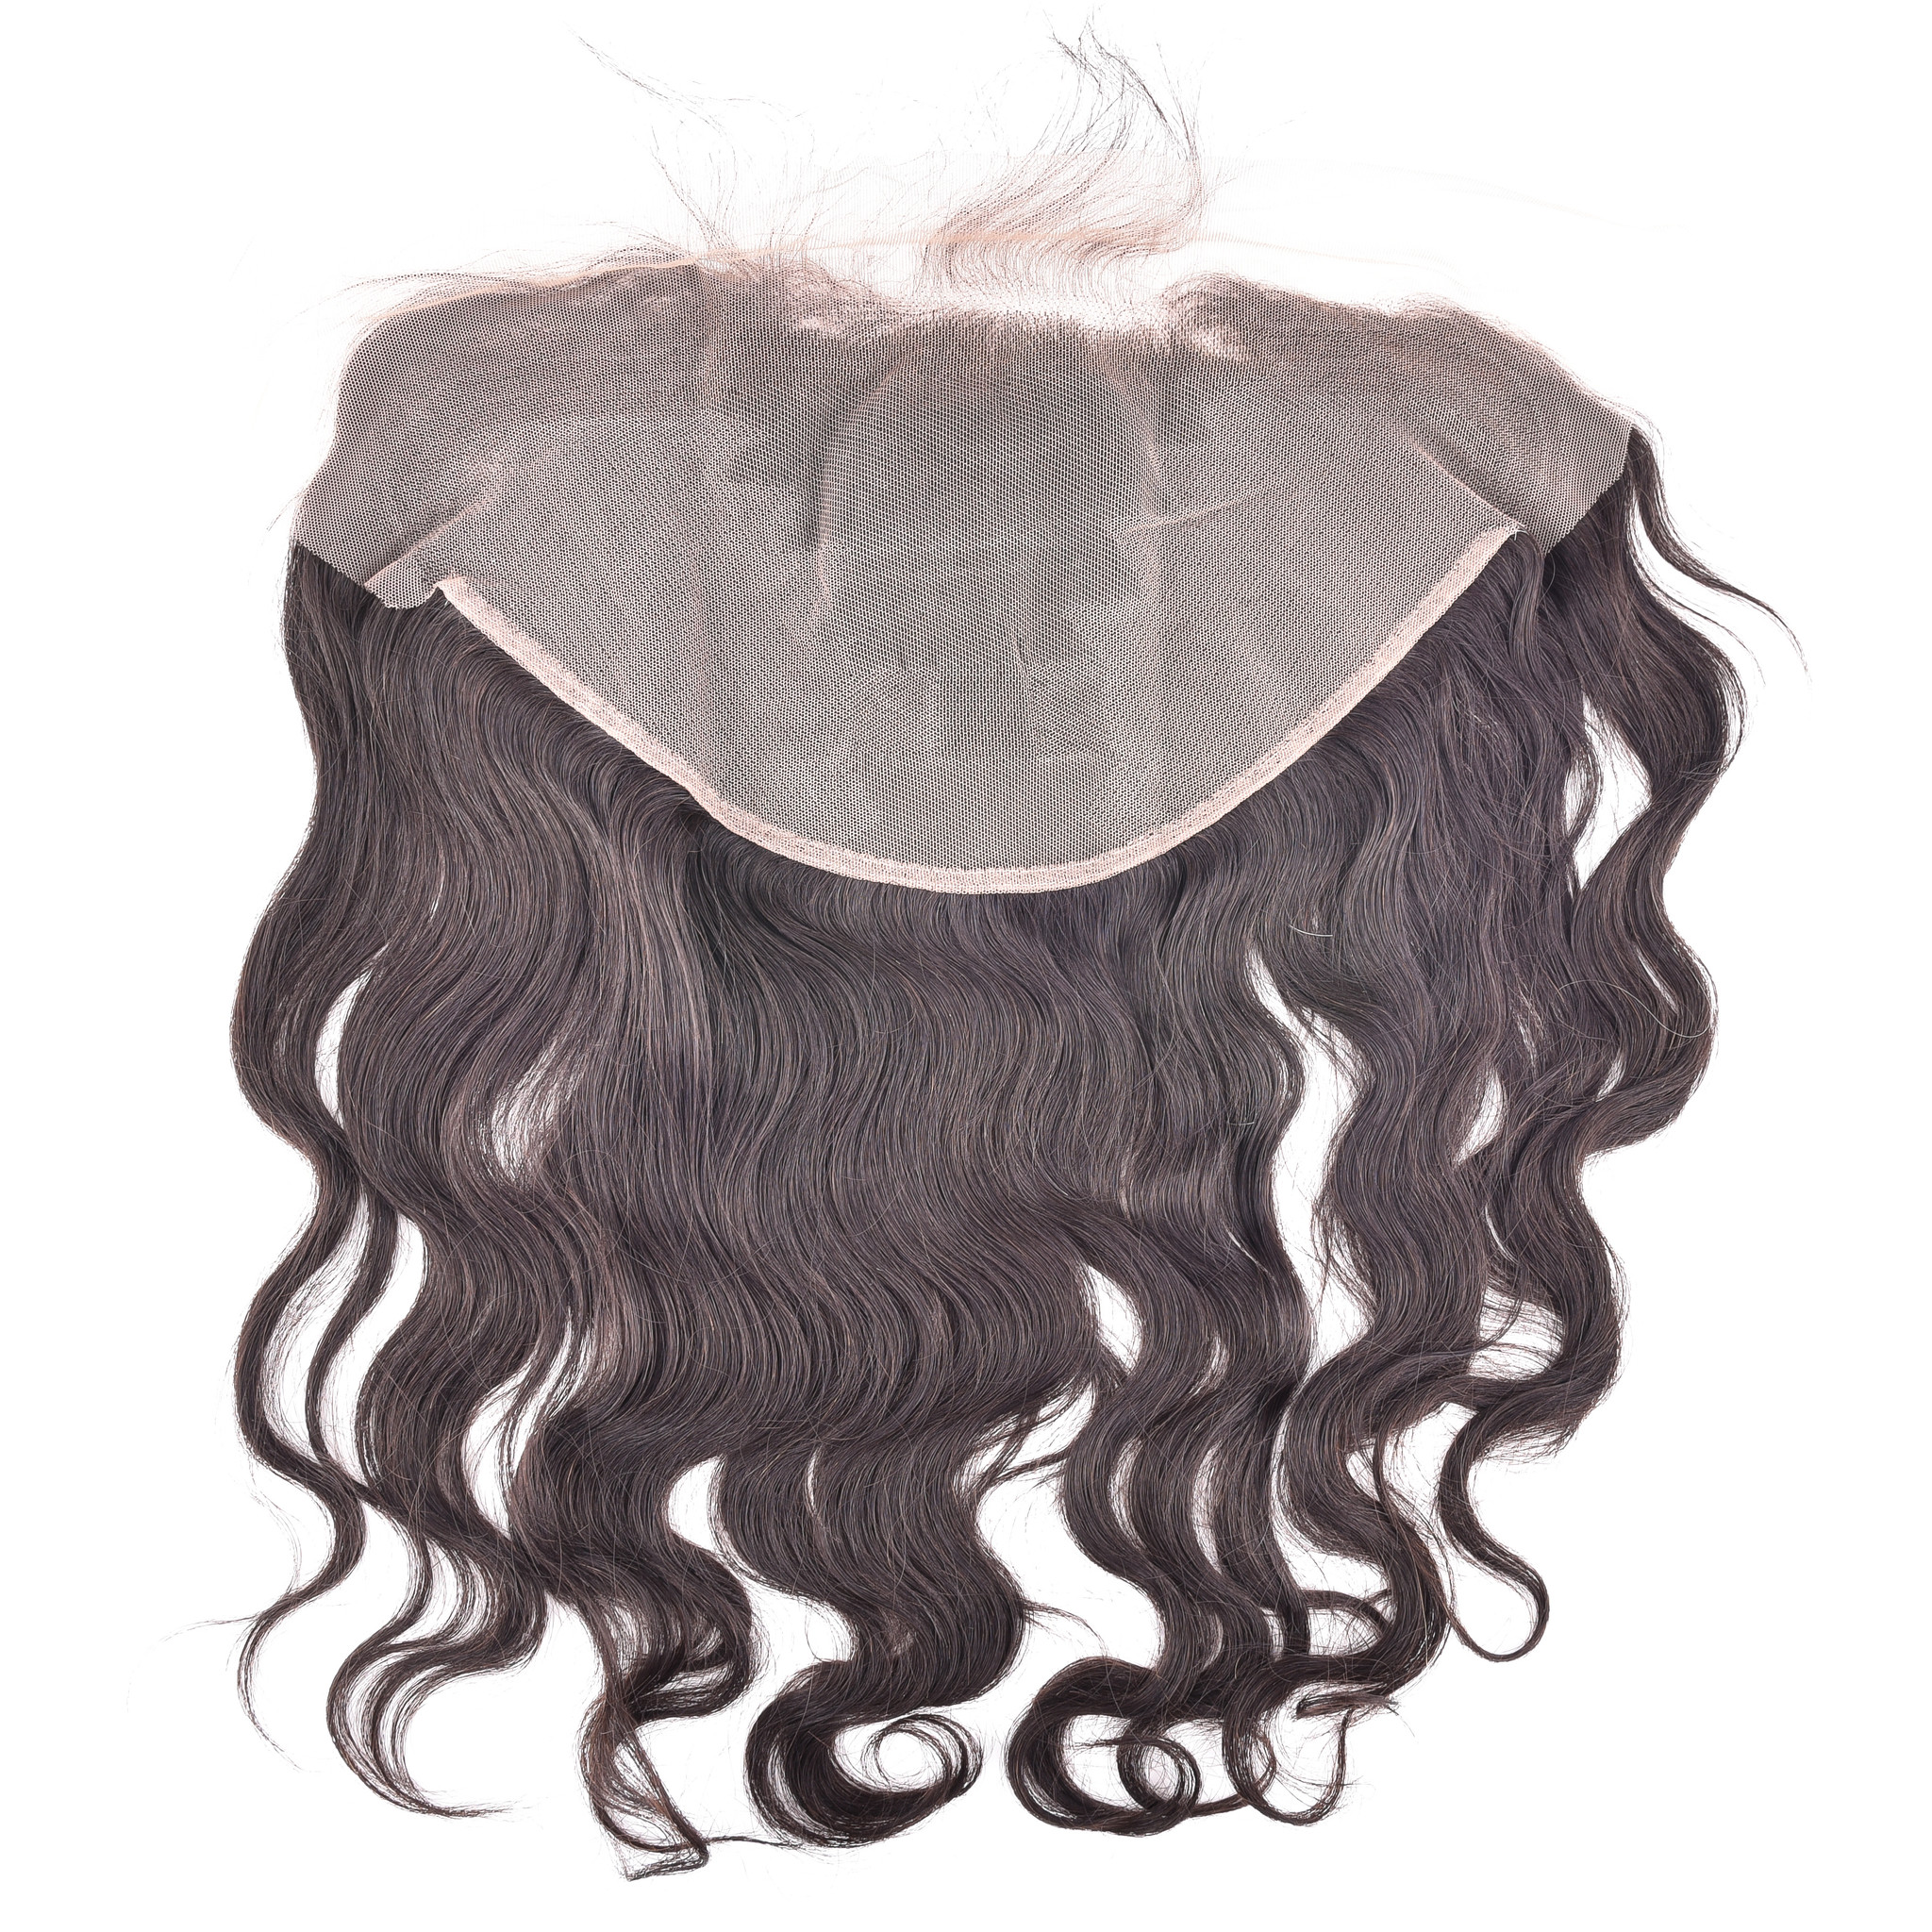 Shri SilverFox Indian Shri Frontal - Body Wave